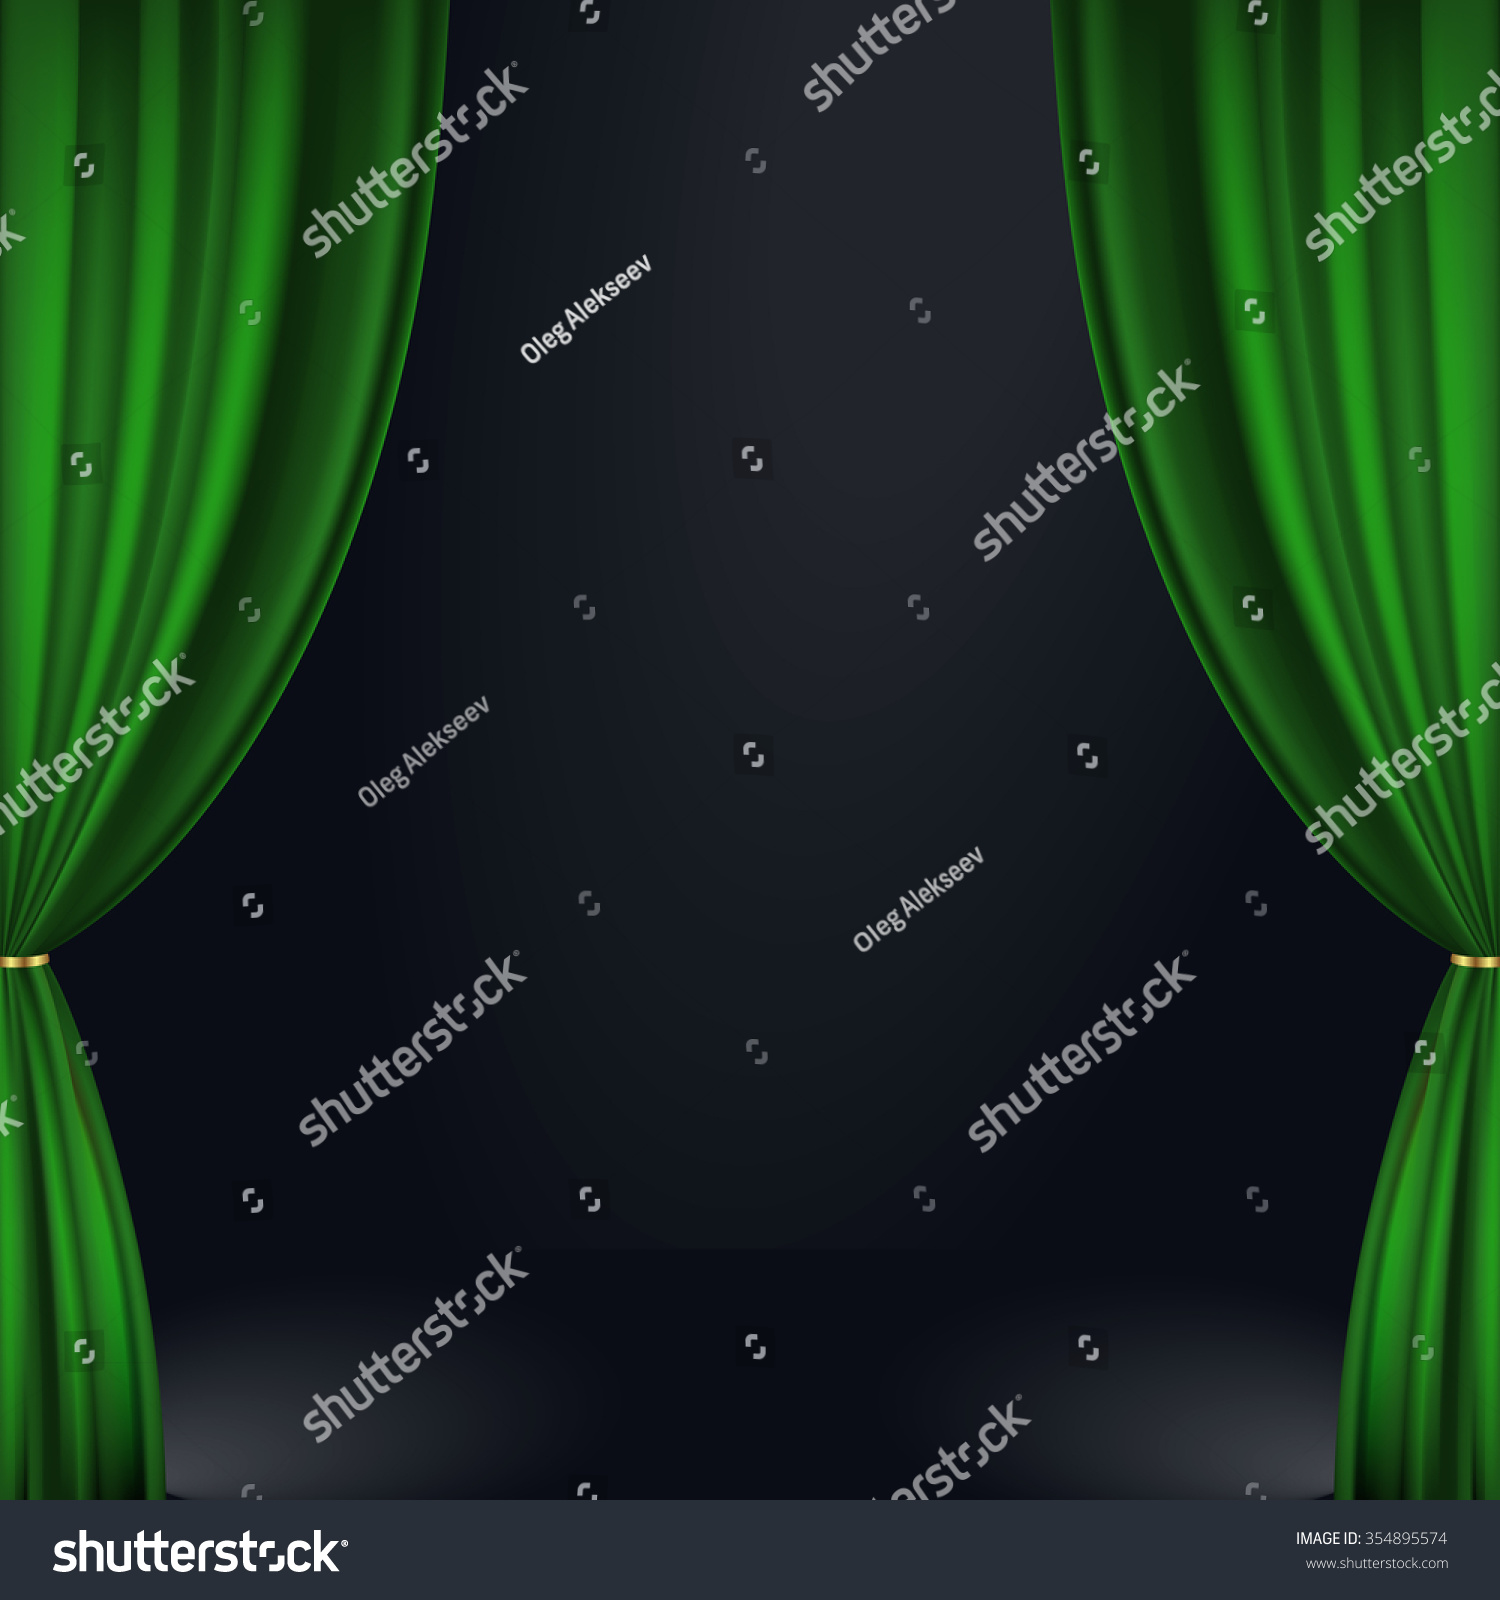 Green stage curtains - Vector Illustration Of A Green Stage Curtain